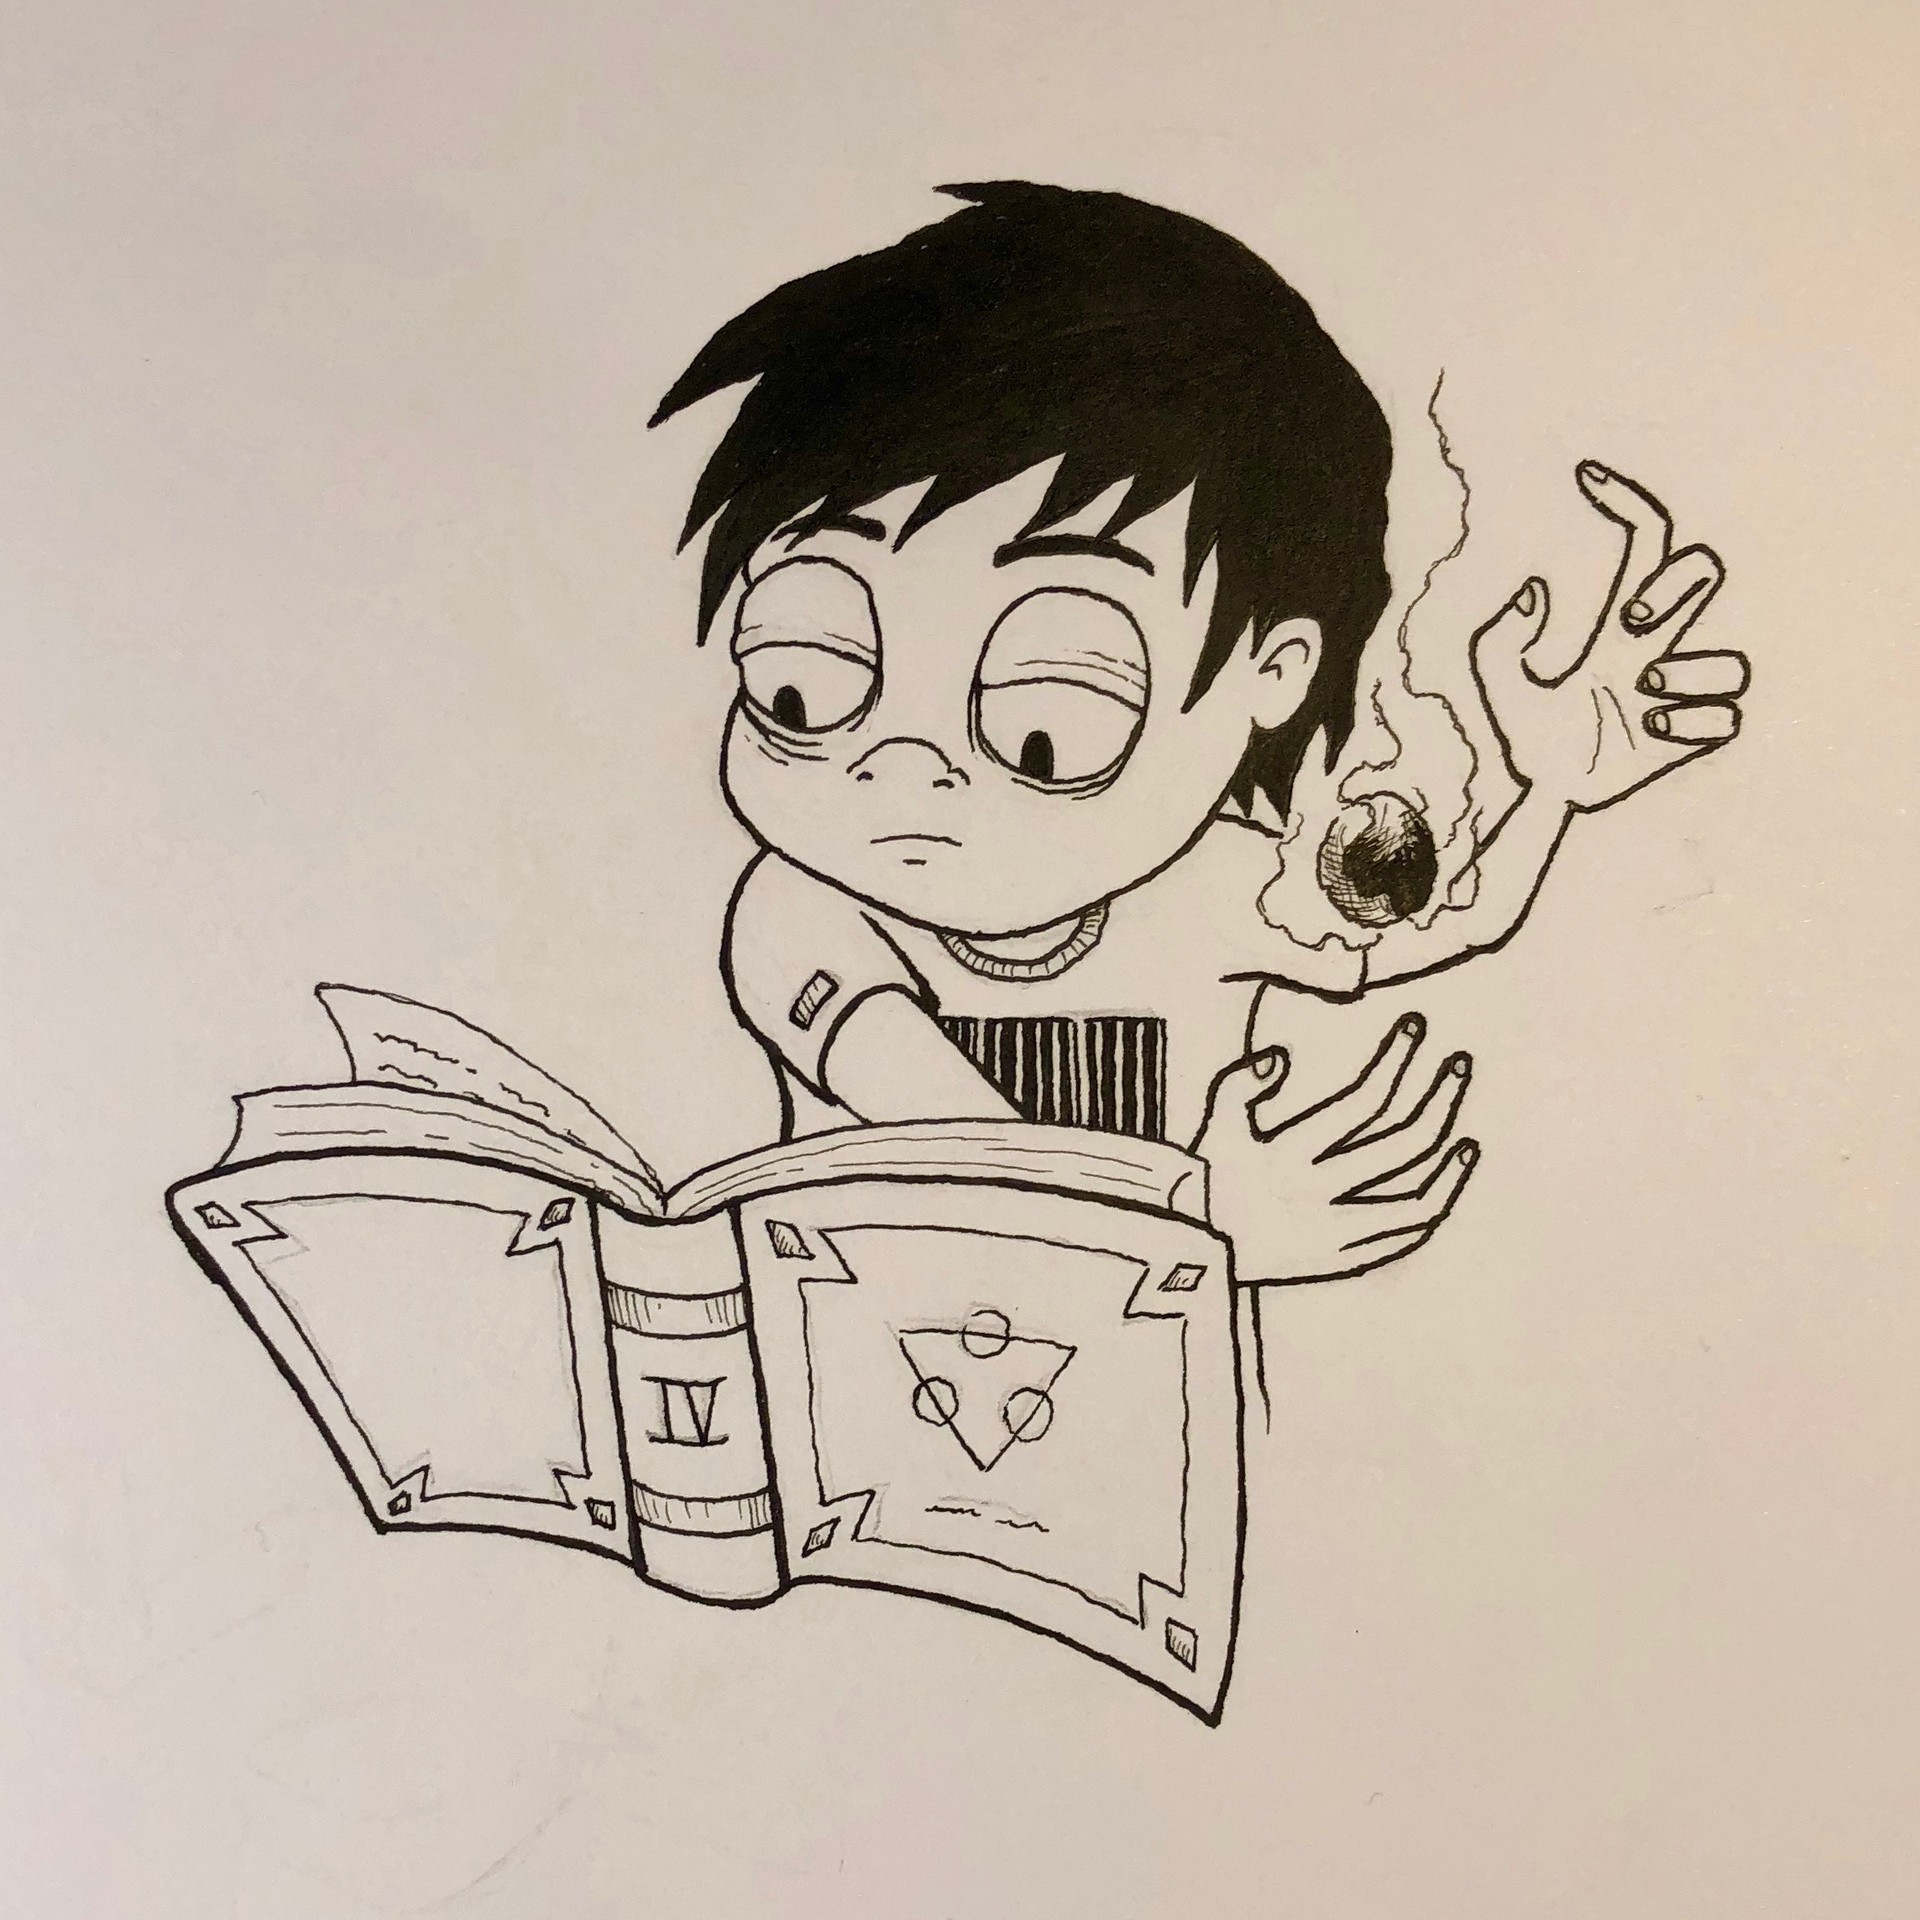 Inktober Day 4 - Spell